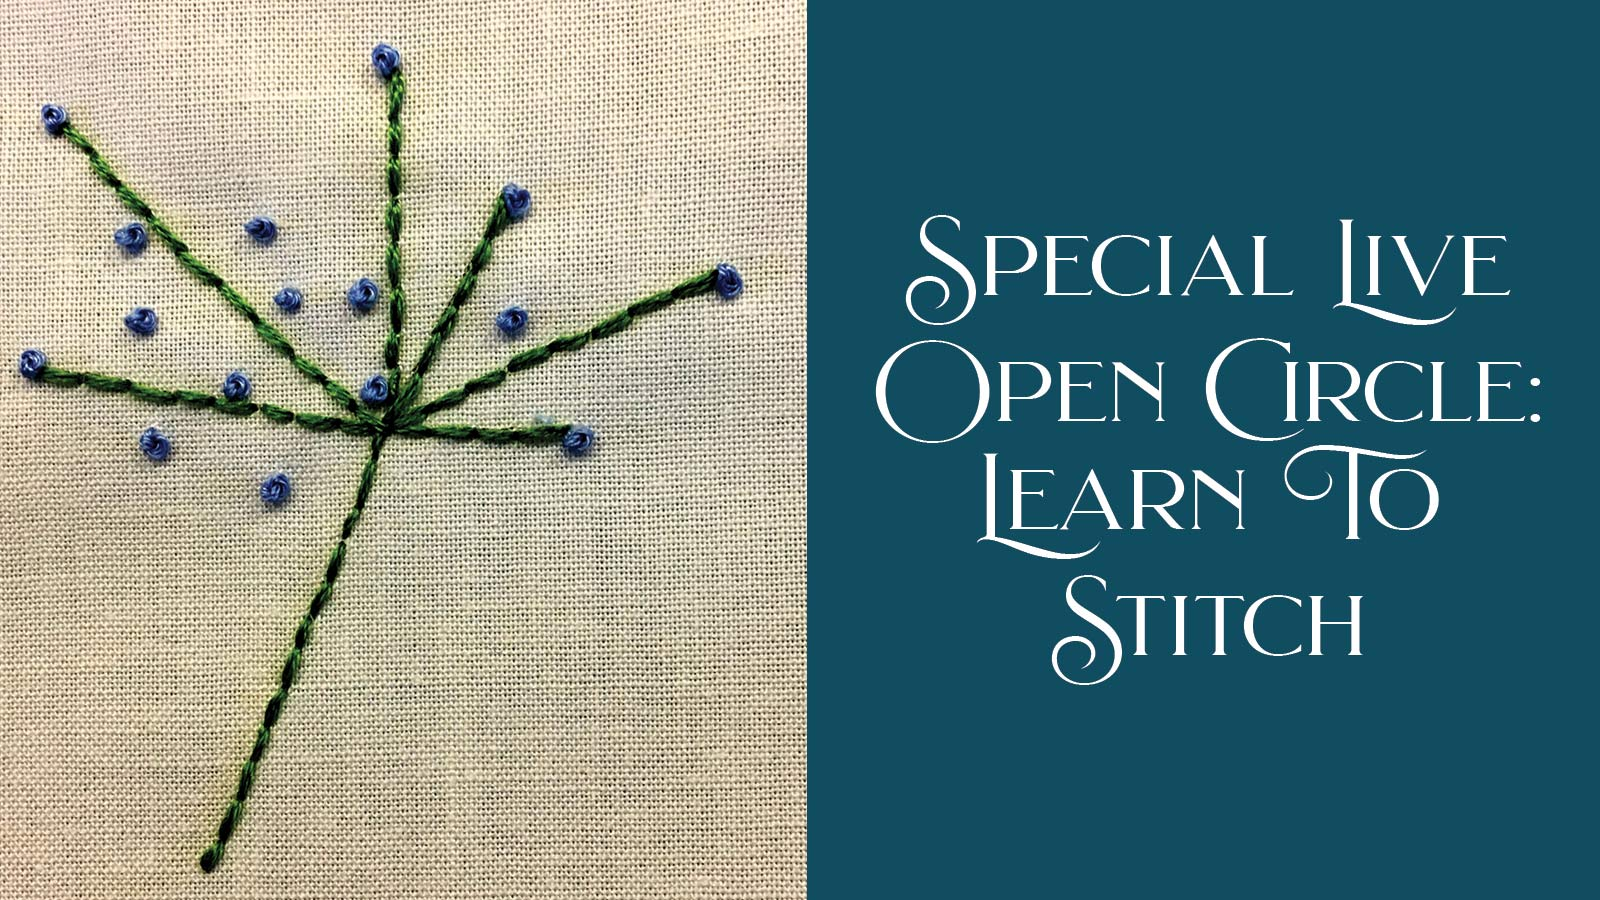 Open Circle announcement showing embroidery stitches in Queen Anne's Lace pattern.